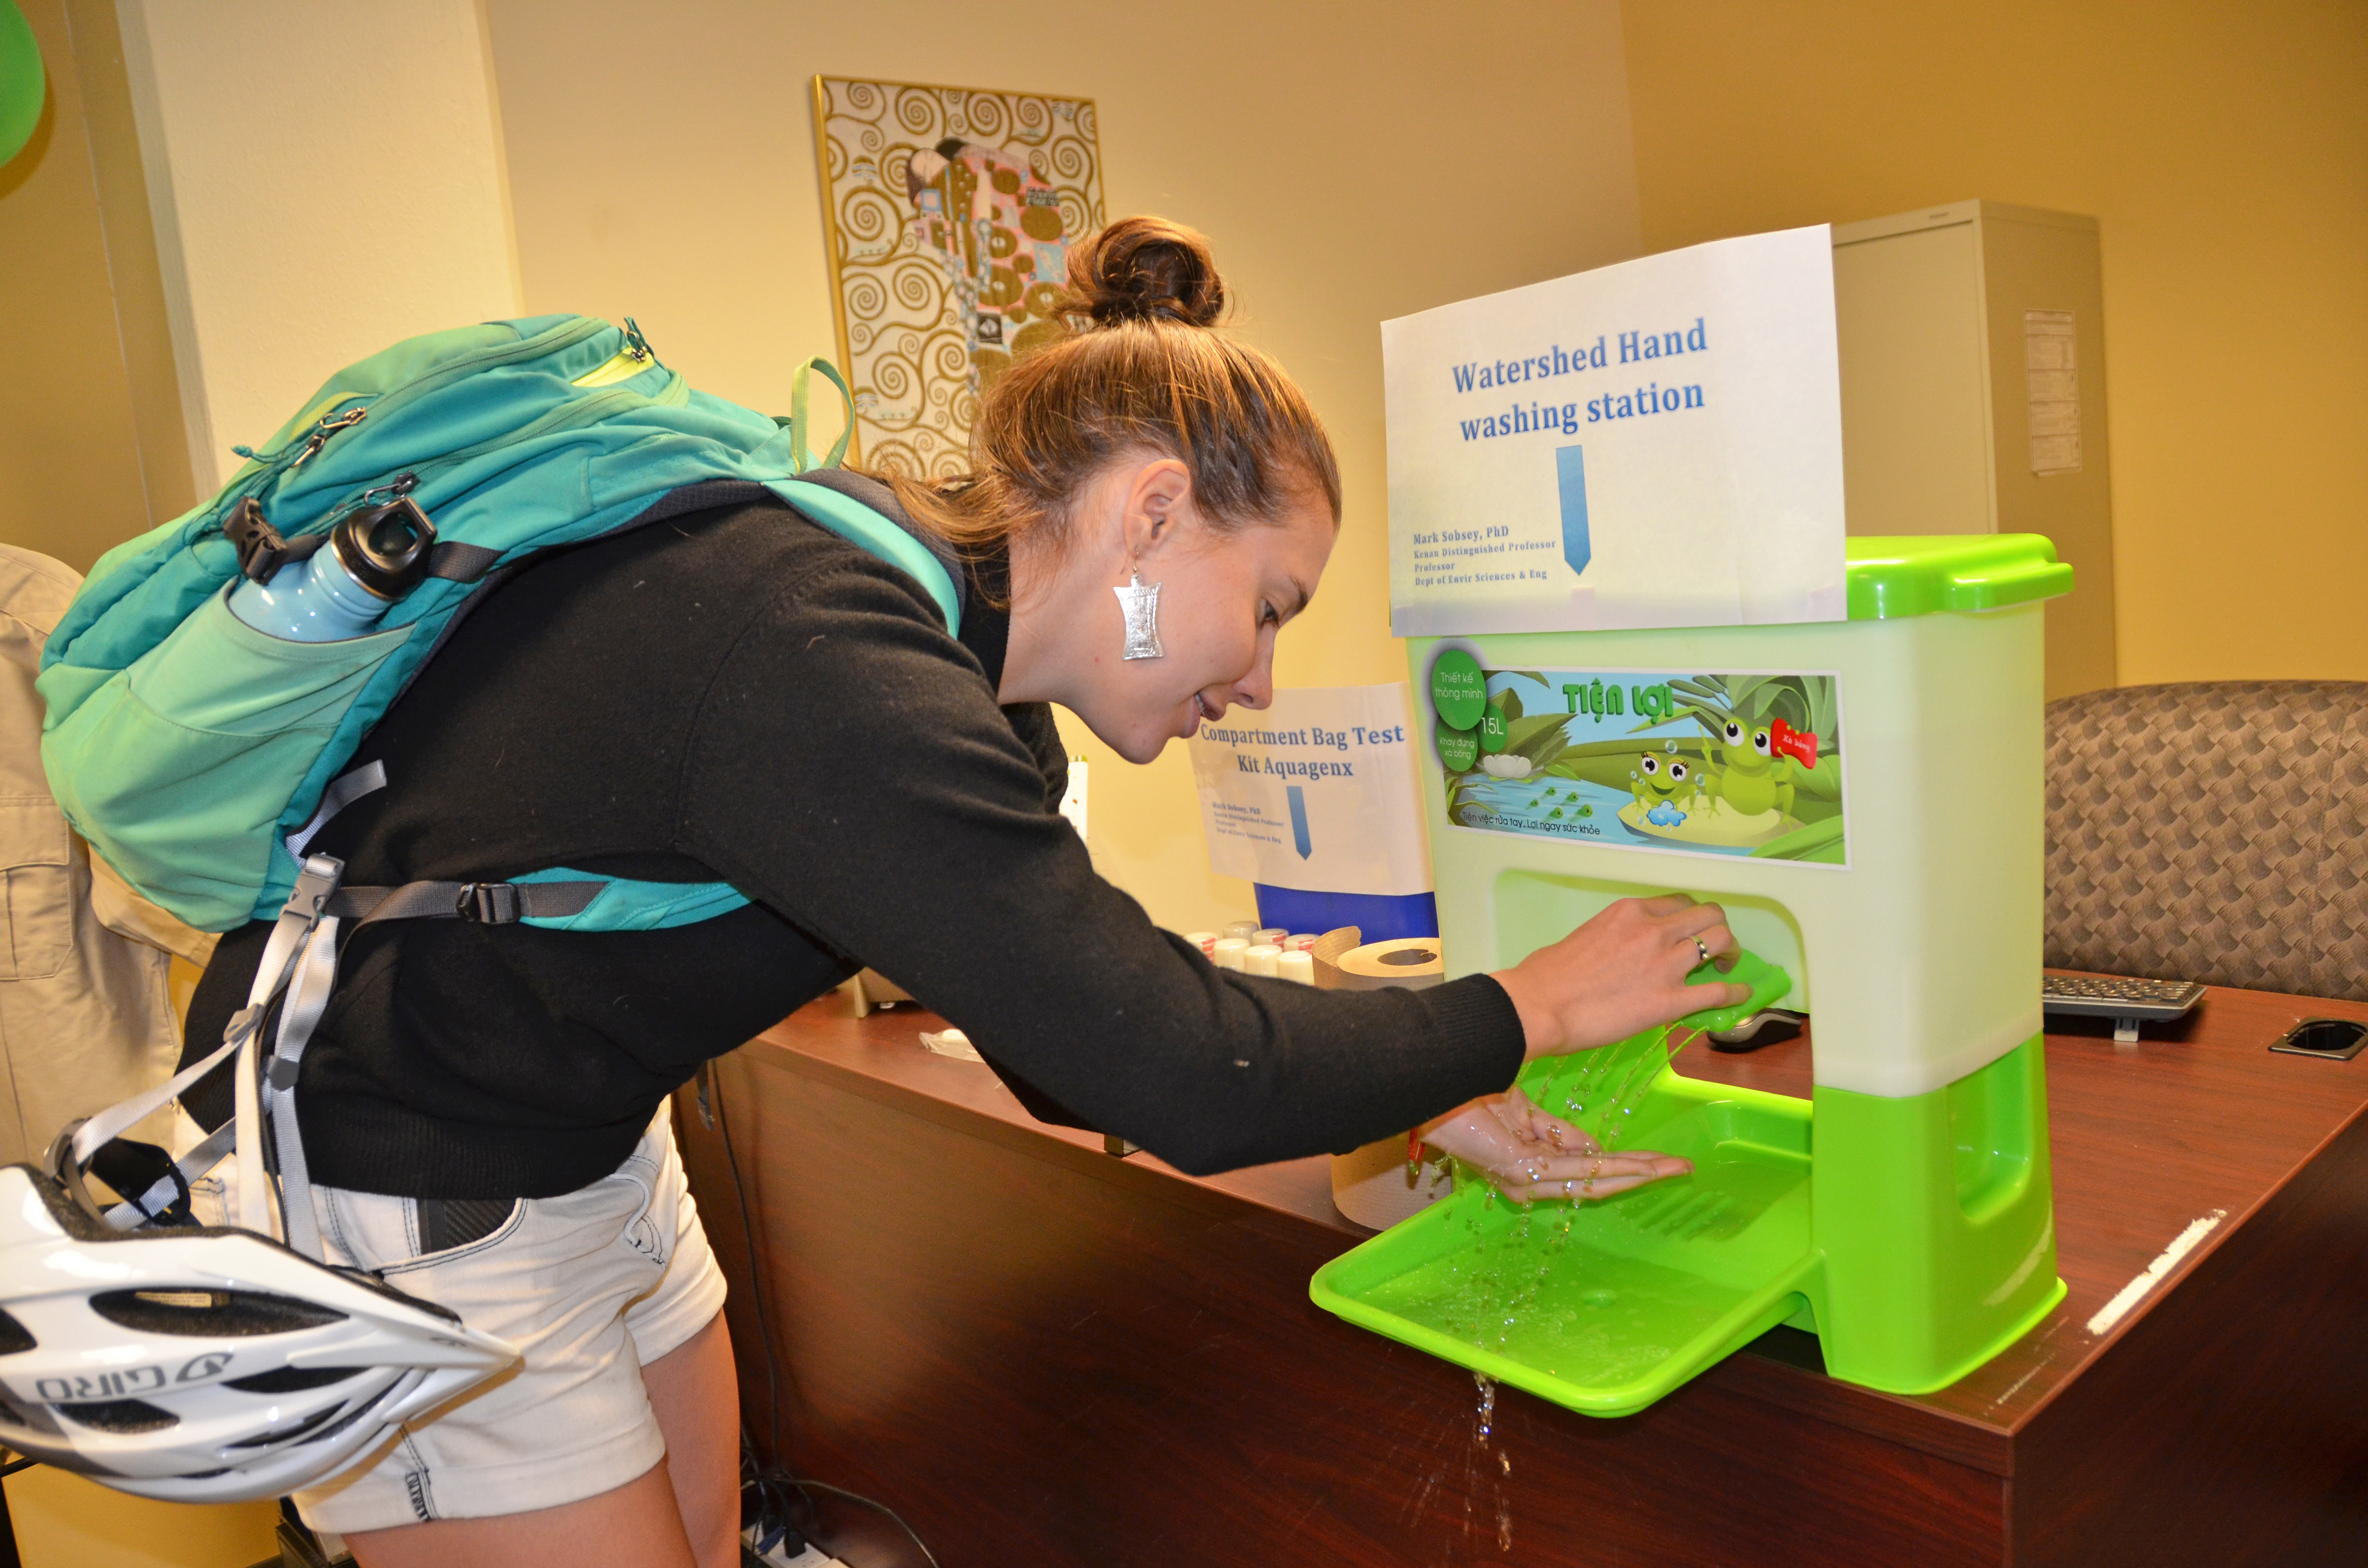 A visitor to the Gillings Global Gateway's Open House tries out a hand washing station used in the field.